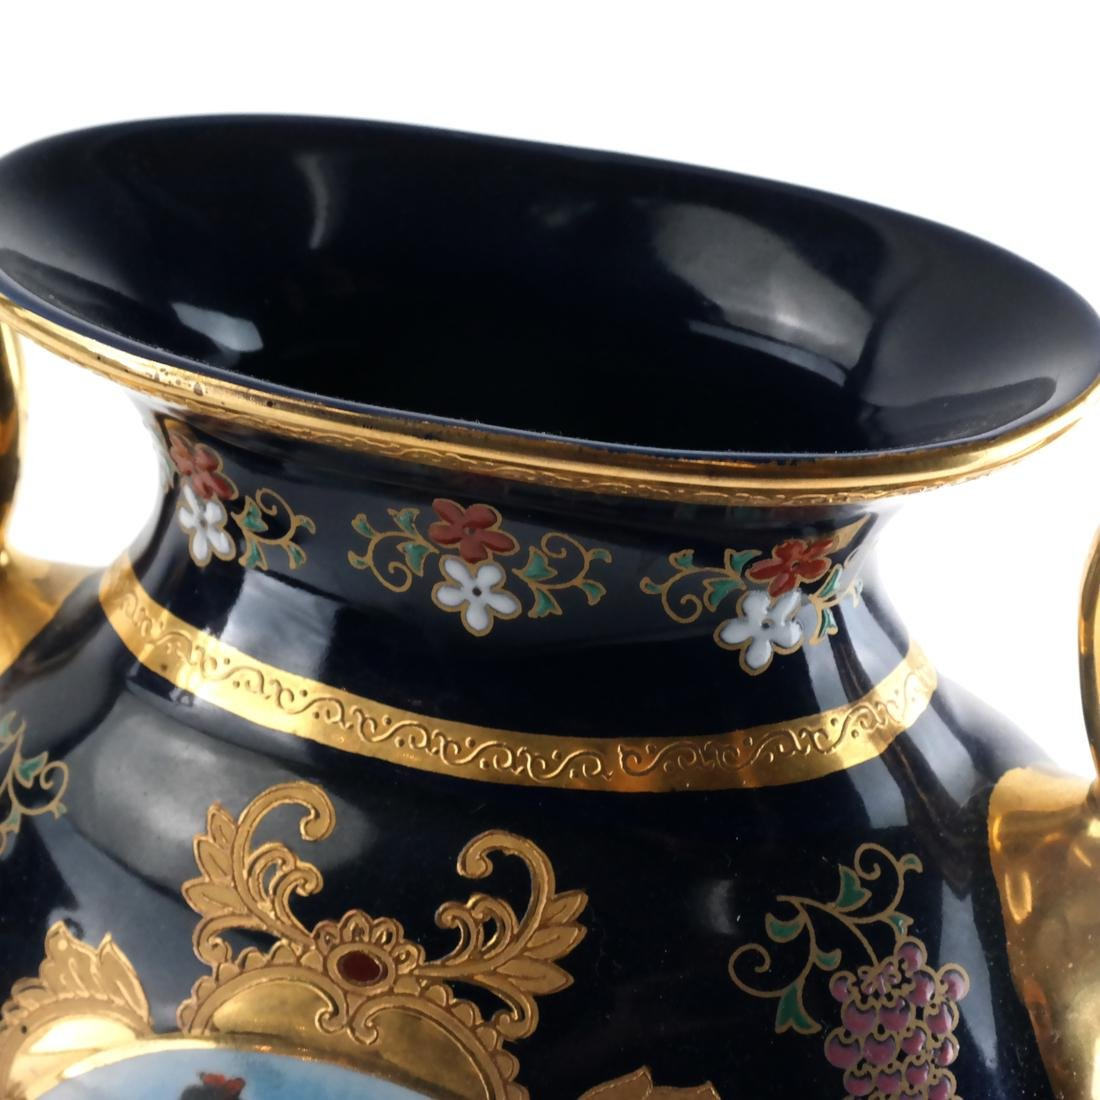 Pair of Limoges-Style Porcelain Vases - 4